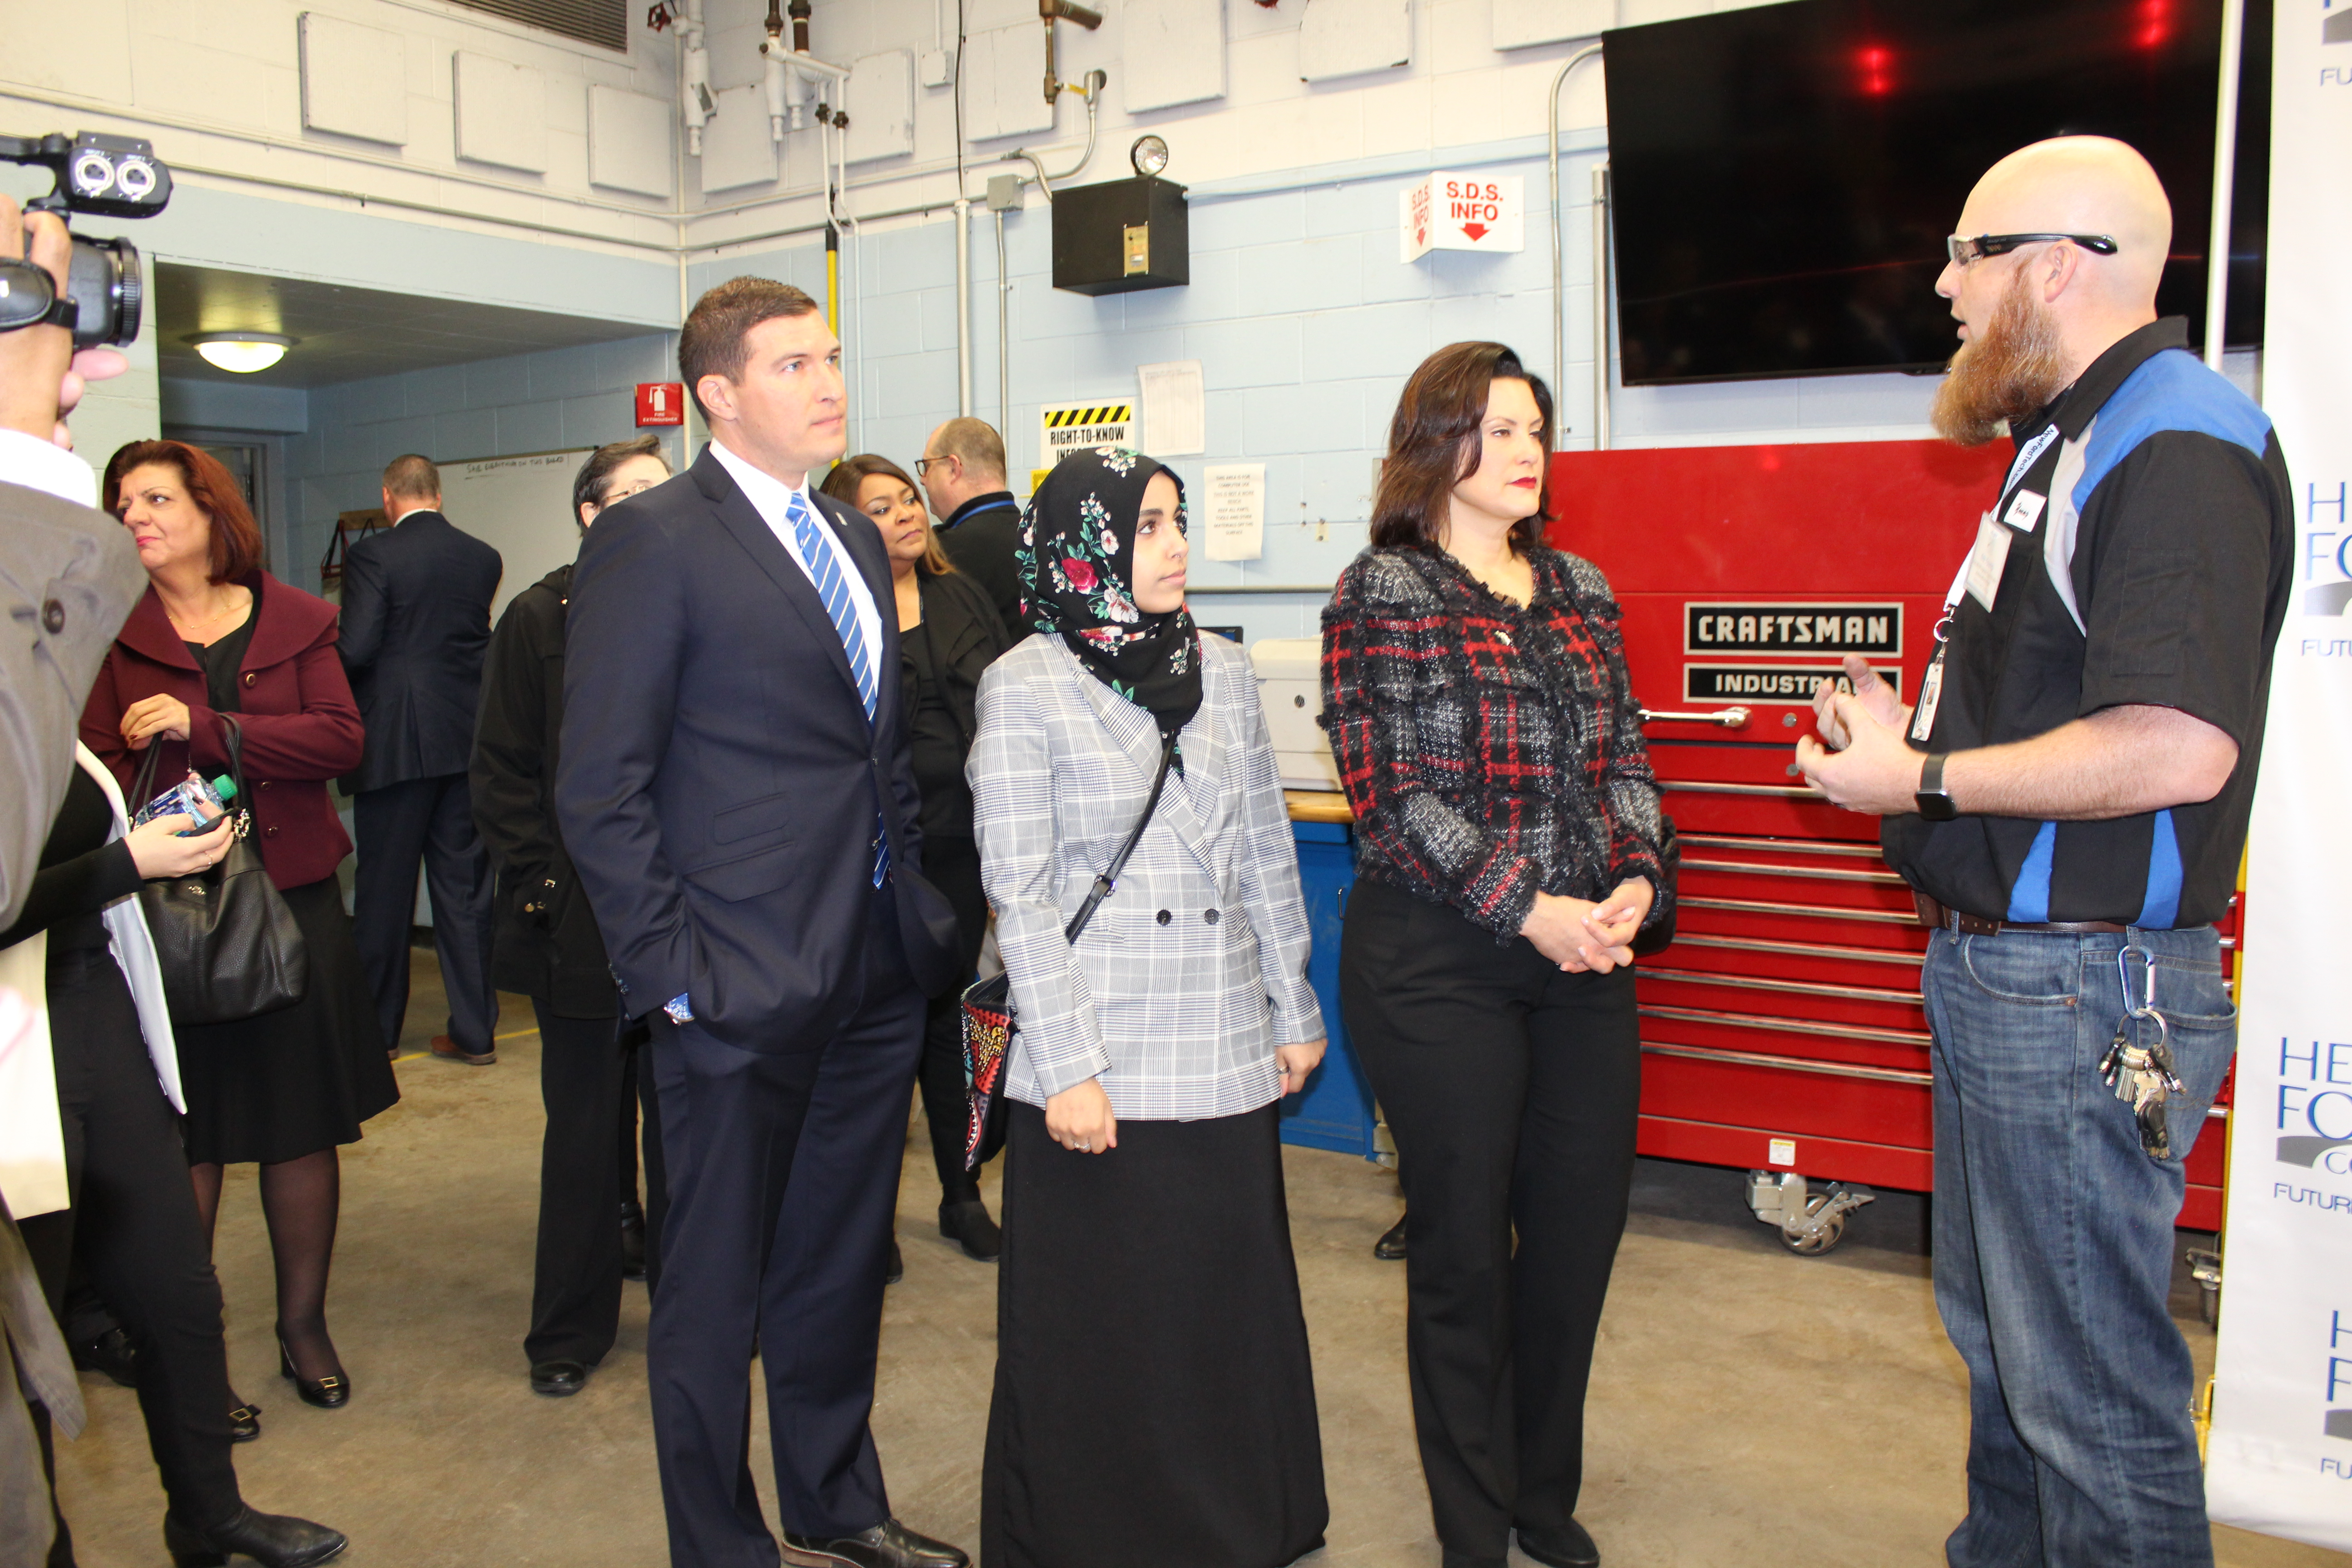 Henry Ford College President Russell Kavalhuna (left), HFC Student Council member Baraka Elmadari (middle), and Michigan Governor Gretchen Whitmer (left) at the automotive lab at Henry Ford College, Dearborn, MI, March 14, 2019. Photo by Fatima Nkata